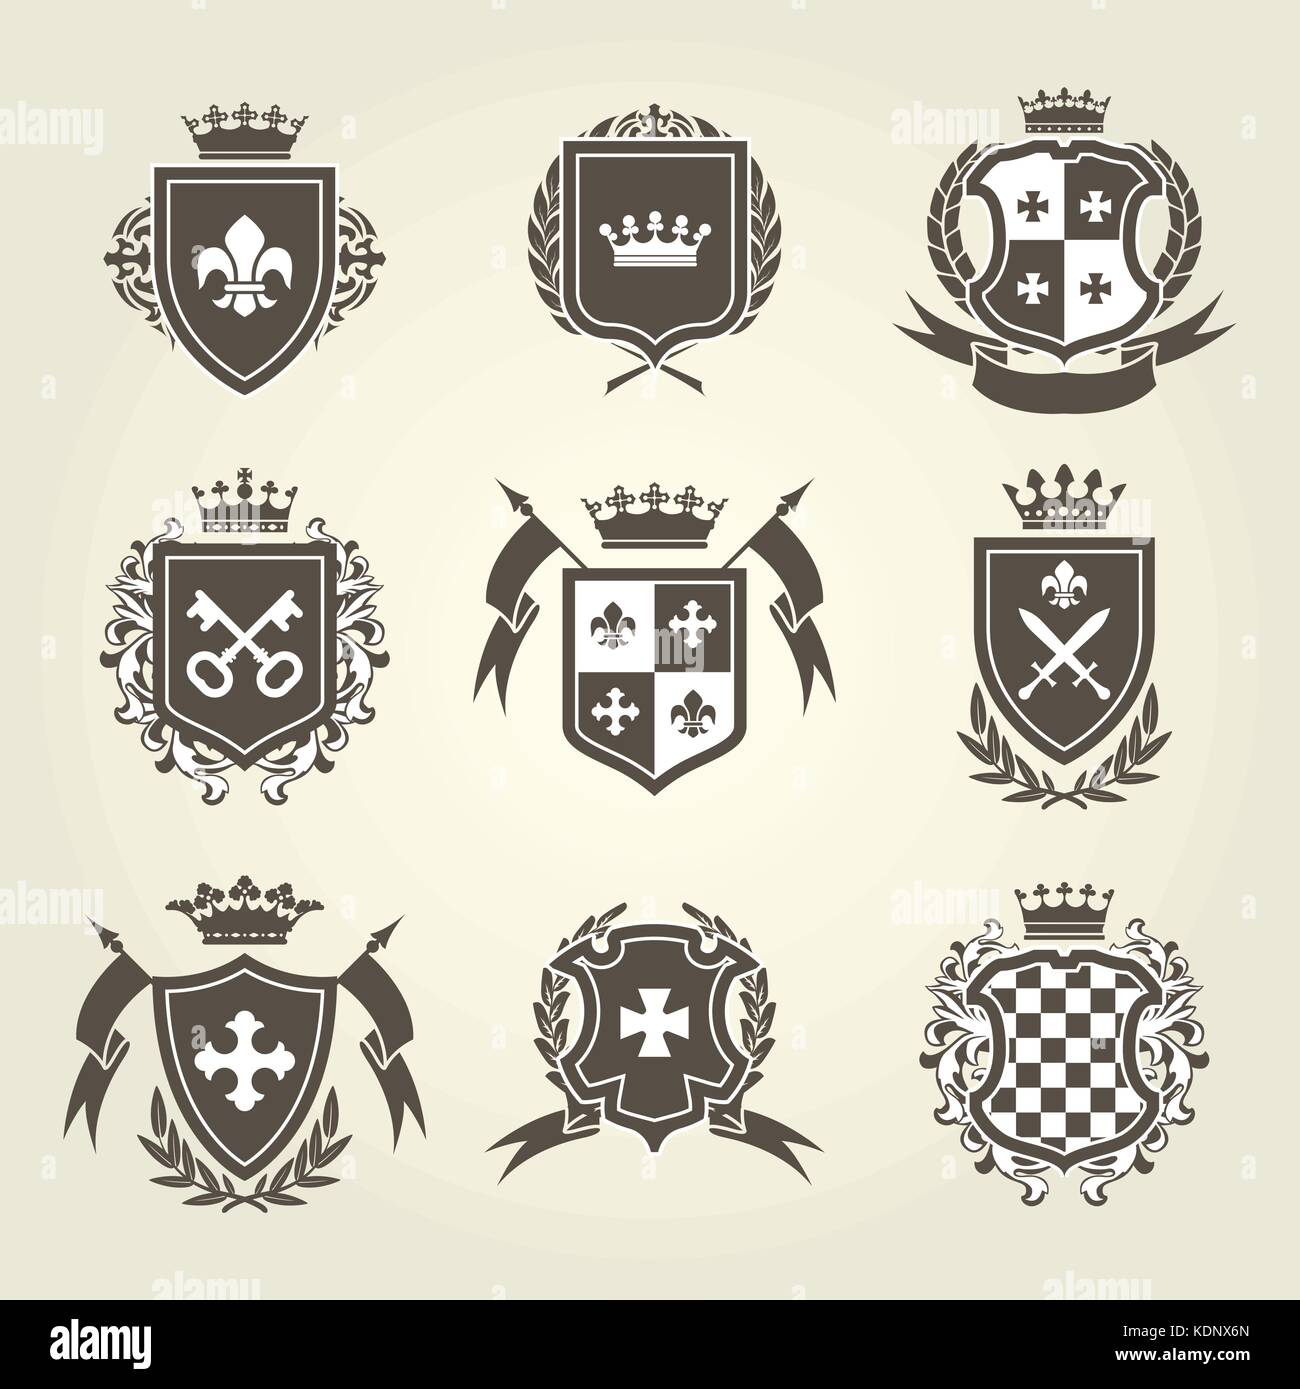 Knight Shields And Royal Coat Of Arms Set Stock Vector Art